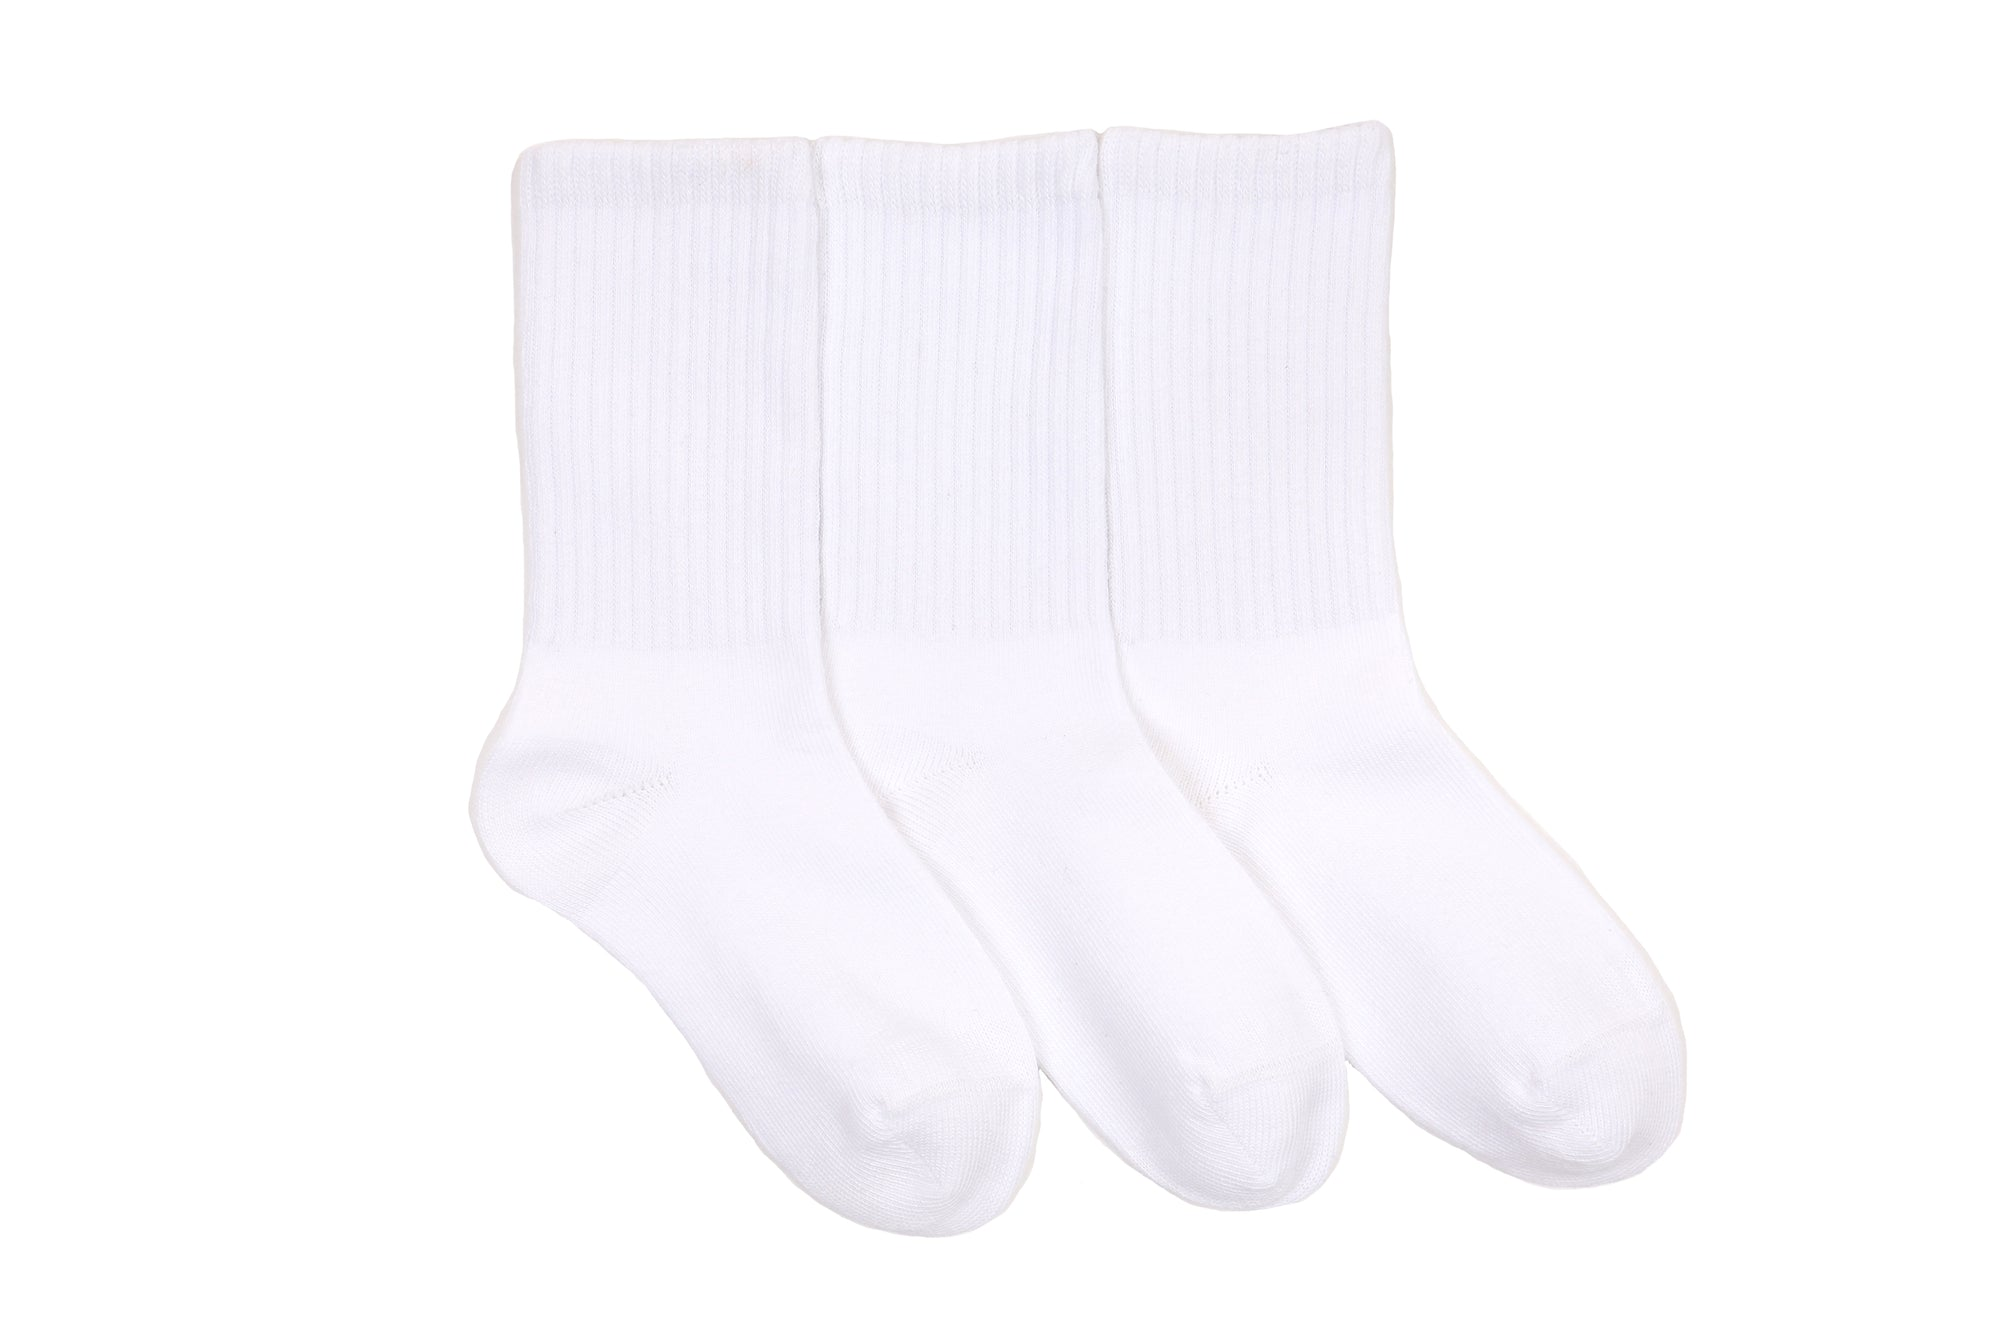 Stride Rite Crew Sock (3 Pack) by Stride Rite - Ponseti's Shoes